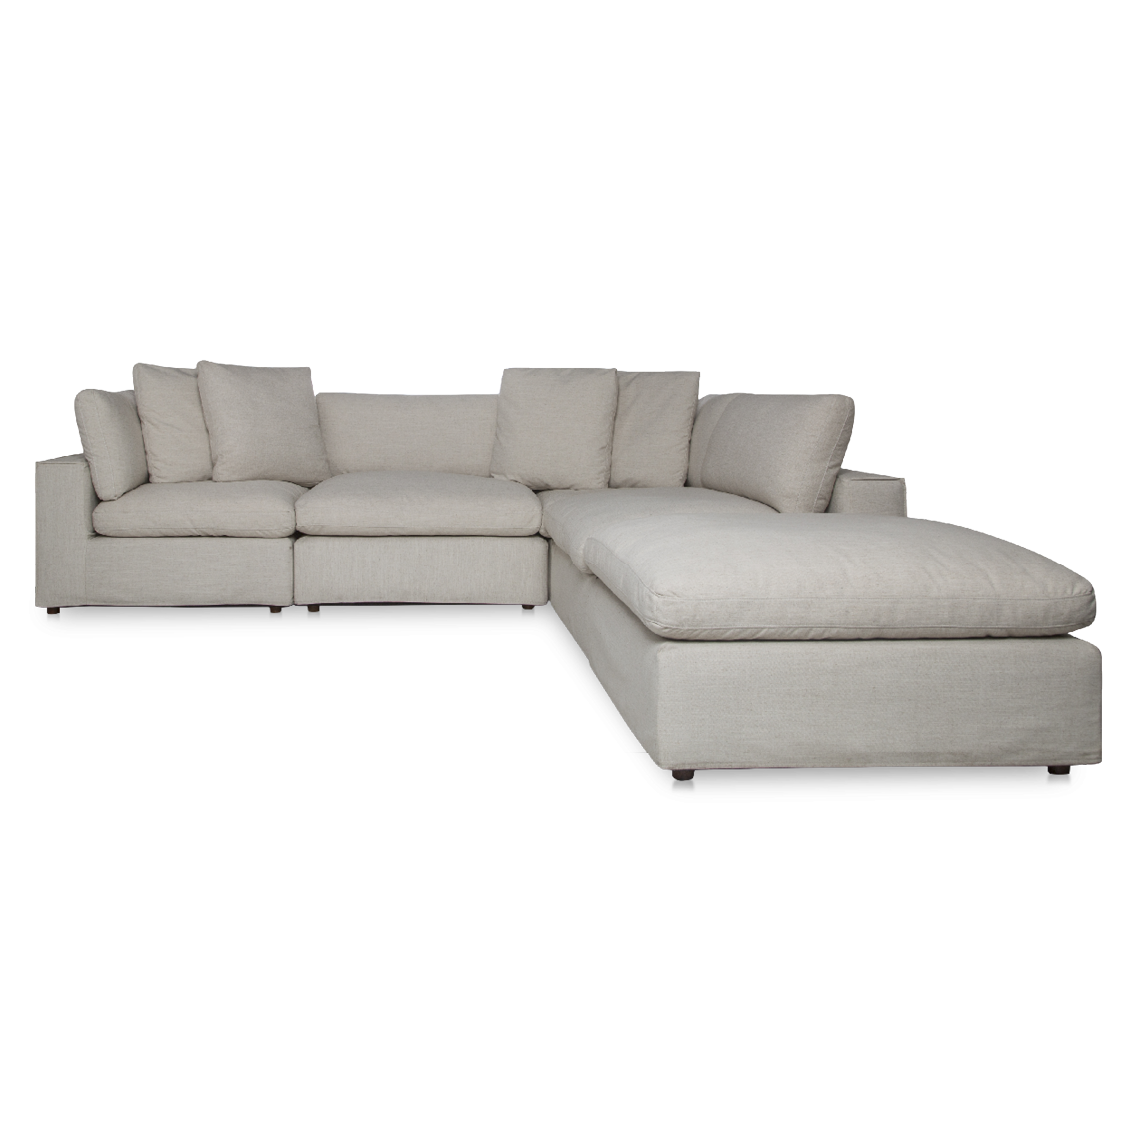 39137 Popular Category - Deep etches_Fabric Modular & Corner Sofas.png